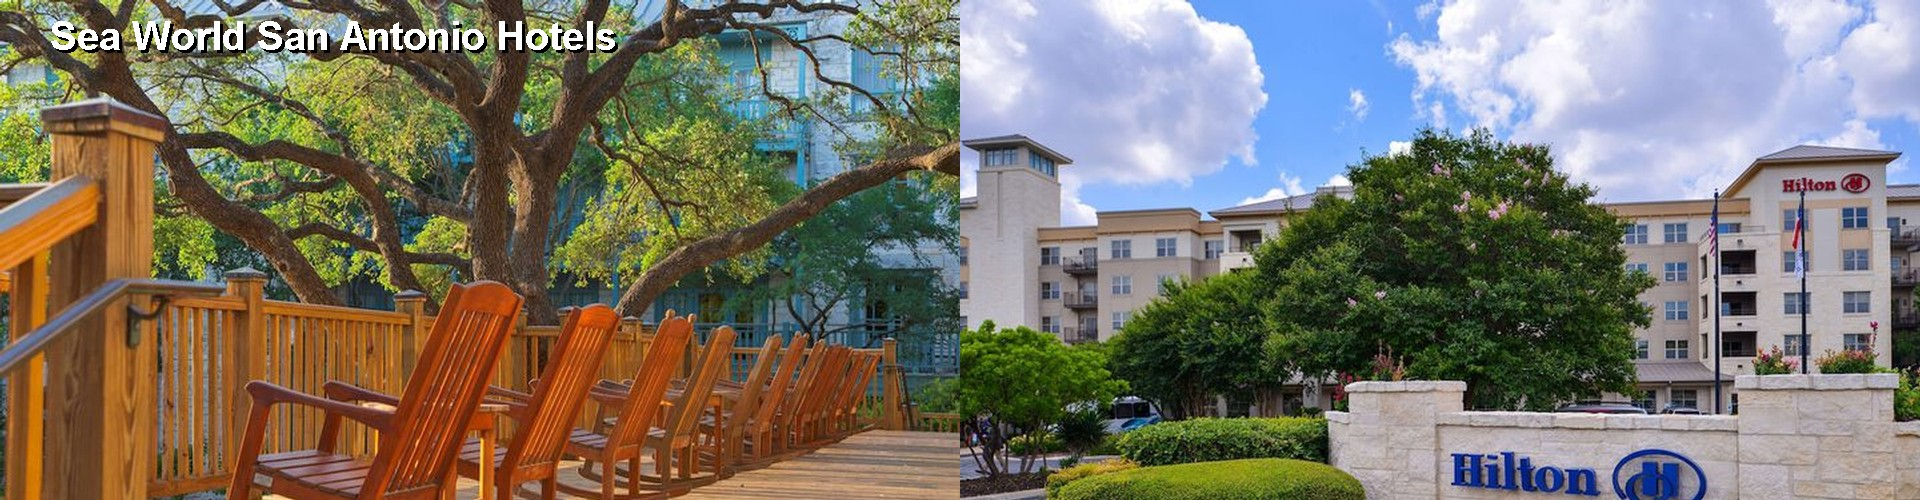 $39+ Hotels Near Sea World San Antonio (TX)